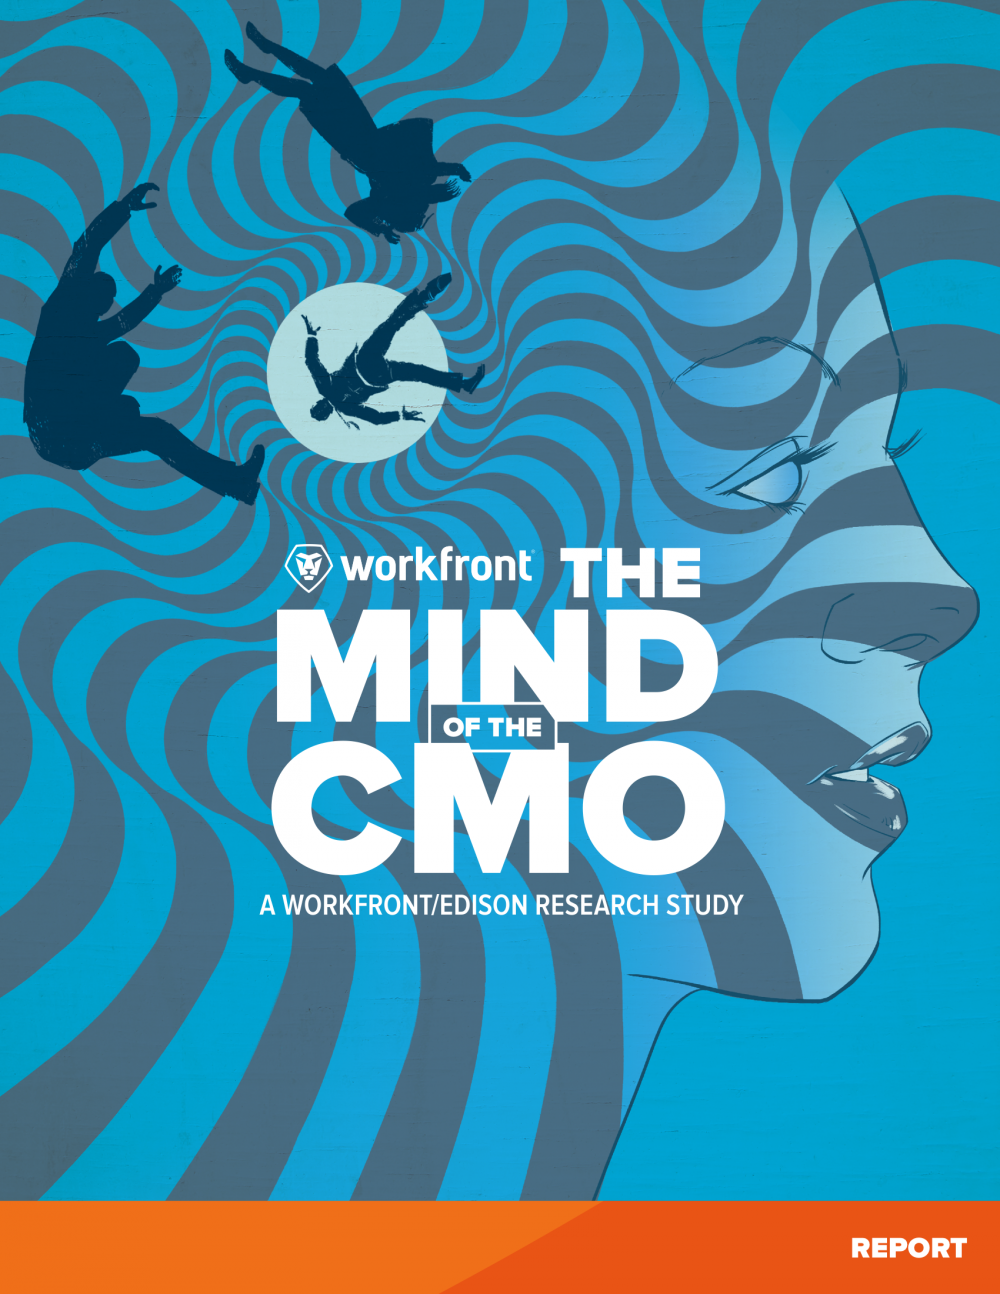 The Mind of the CMO - A Workfront/Edison Research Study